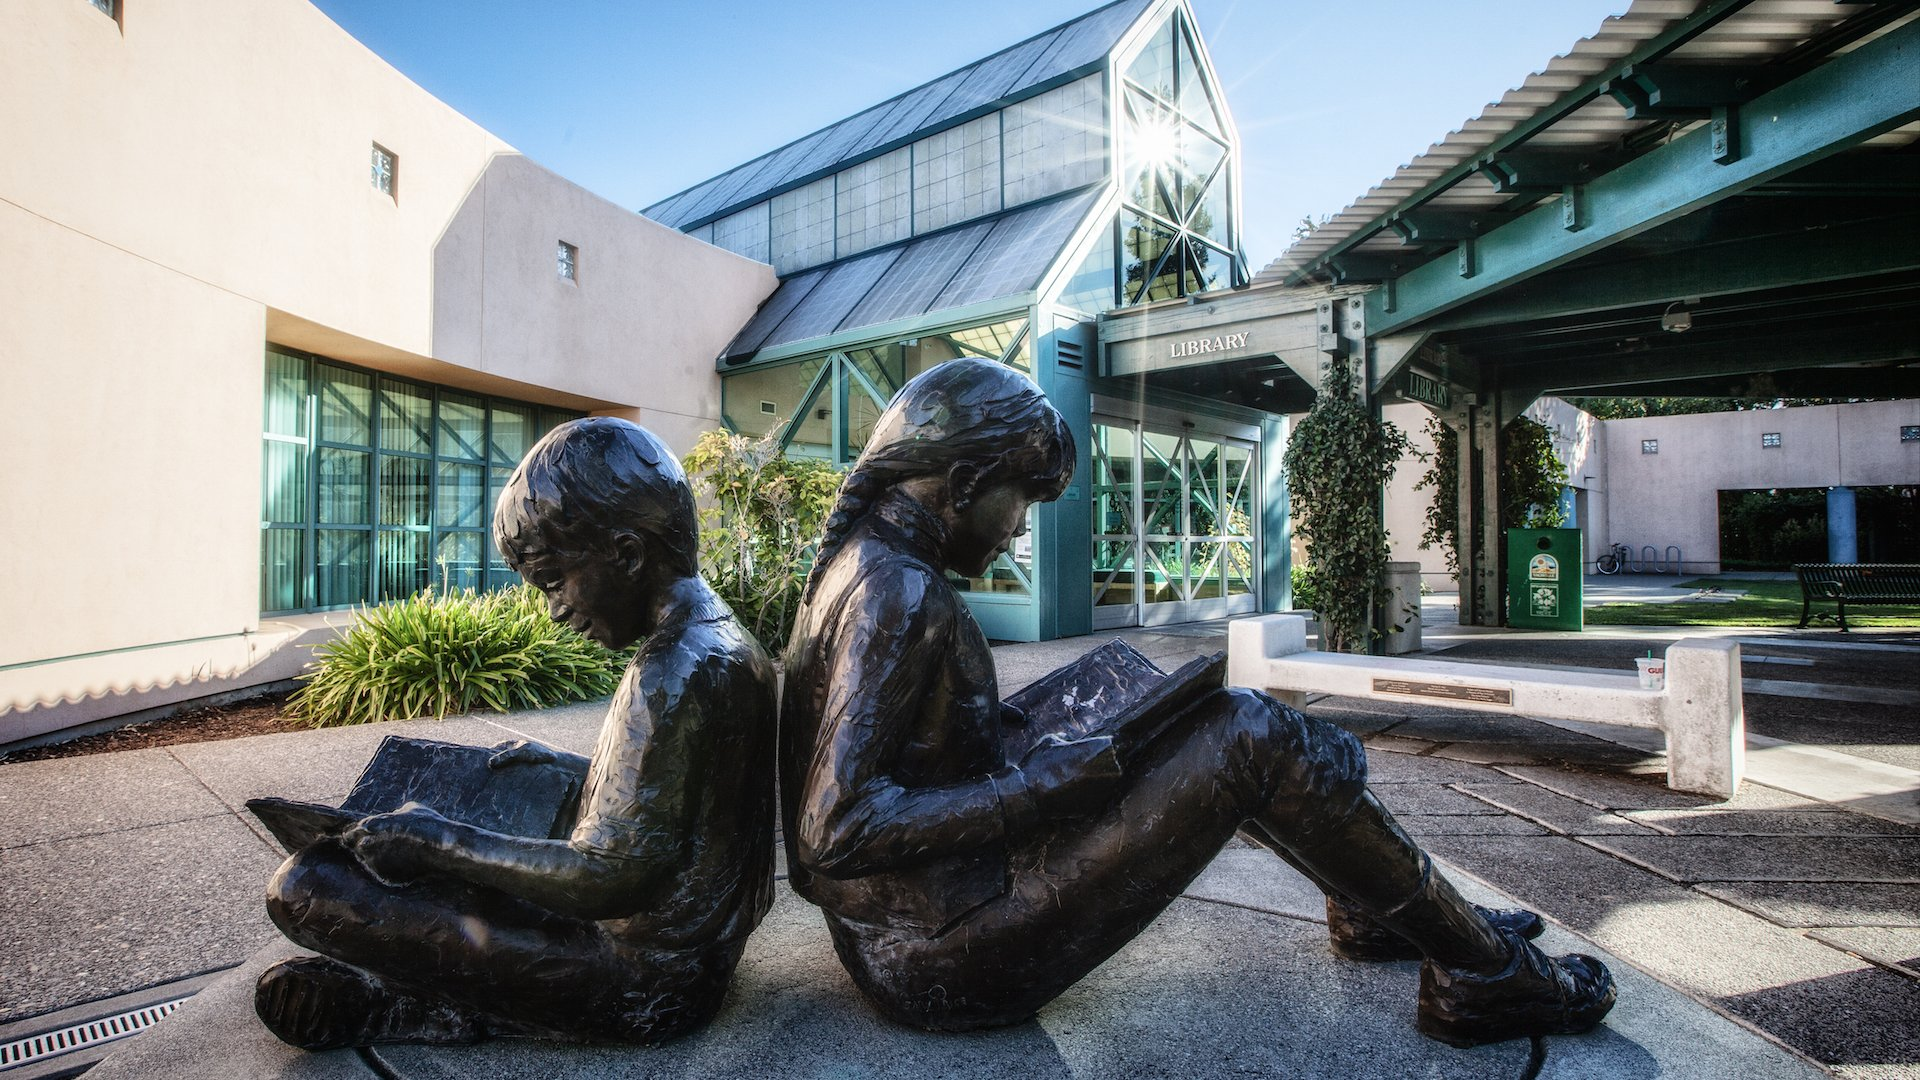 From art galleries to theater and public works of art, explore Vacaville's thriving art scene.